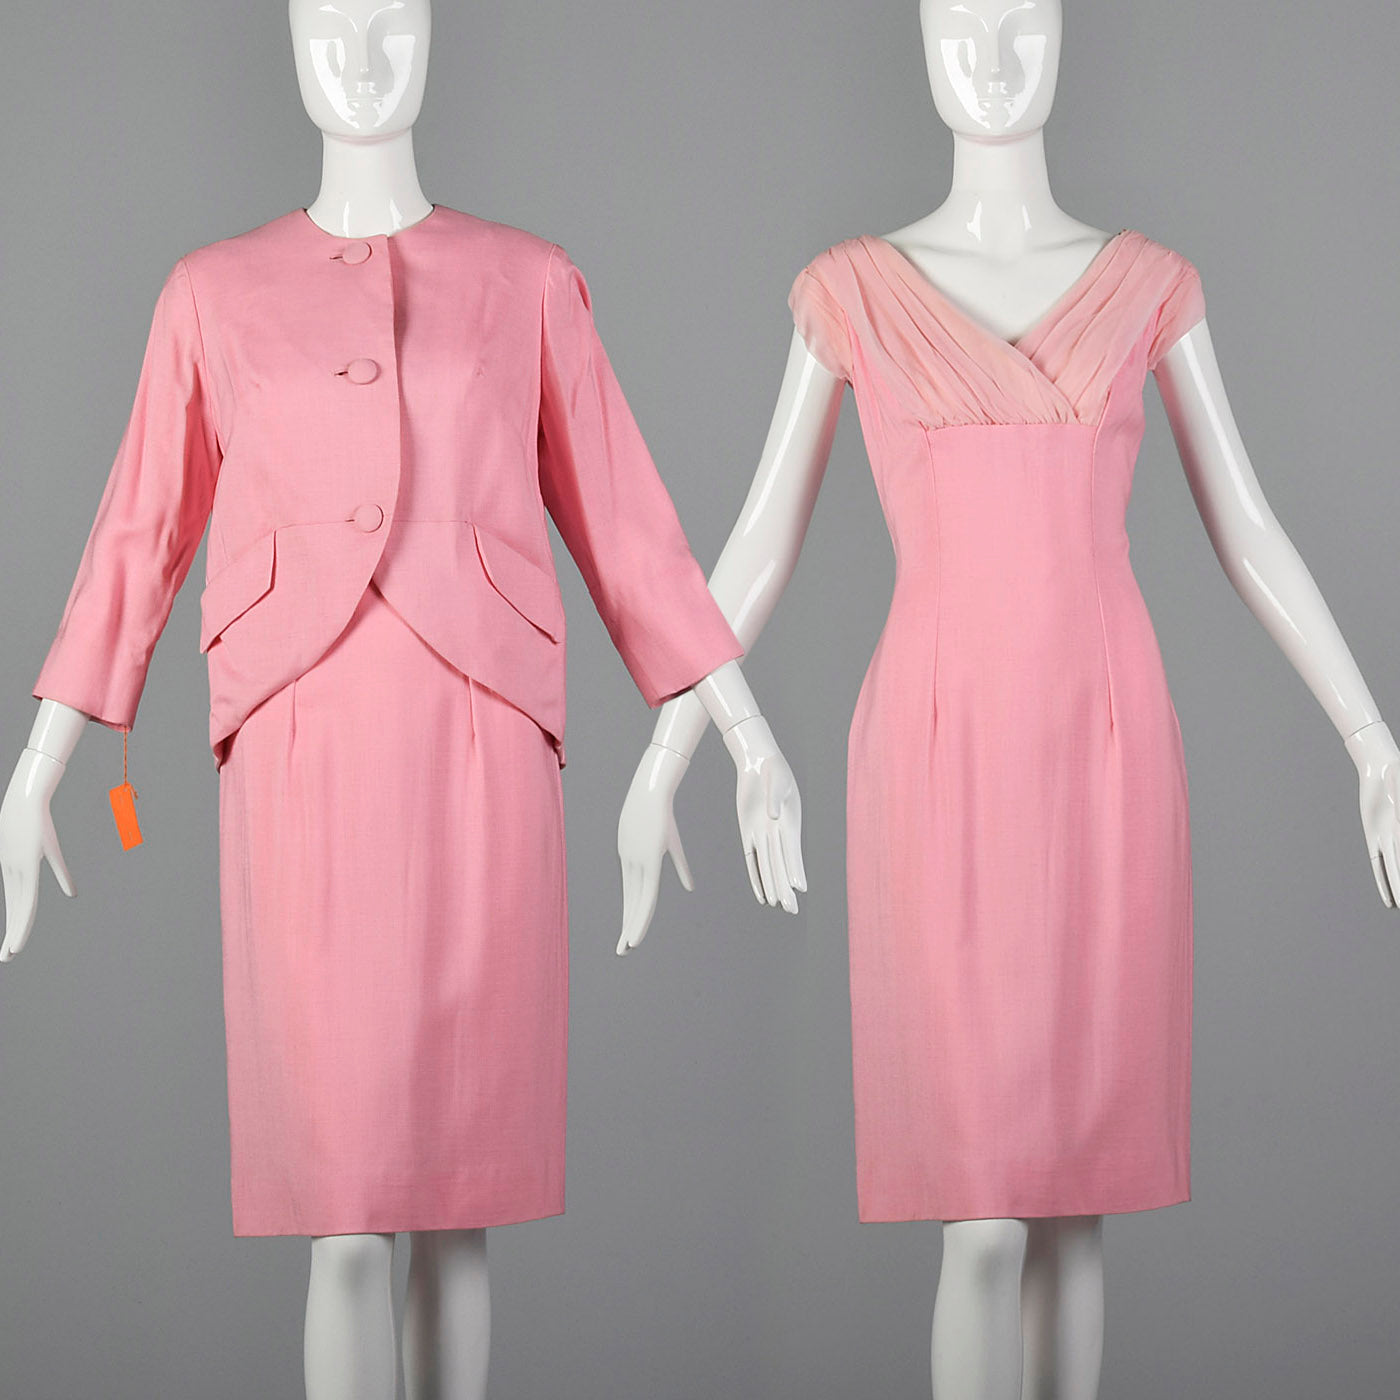 1960s Lilli Diamond Deadstock Pink Wiggle Dress and Jacket Set